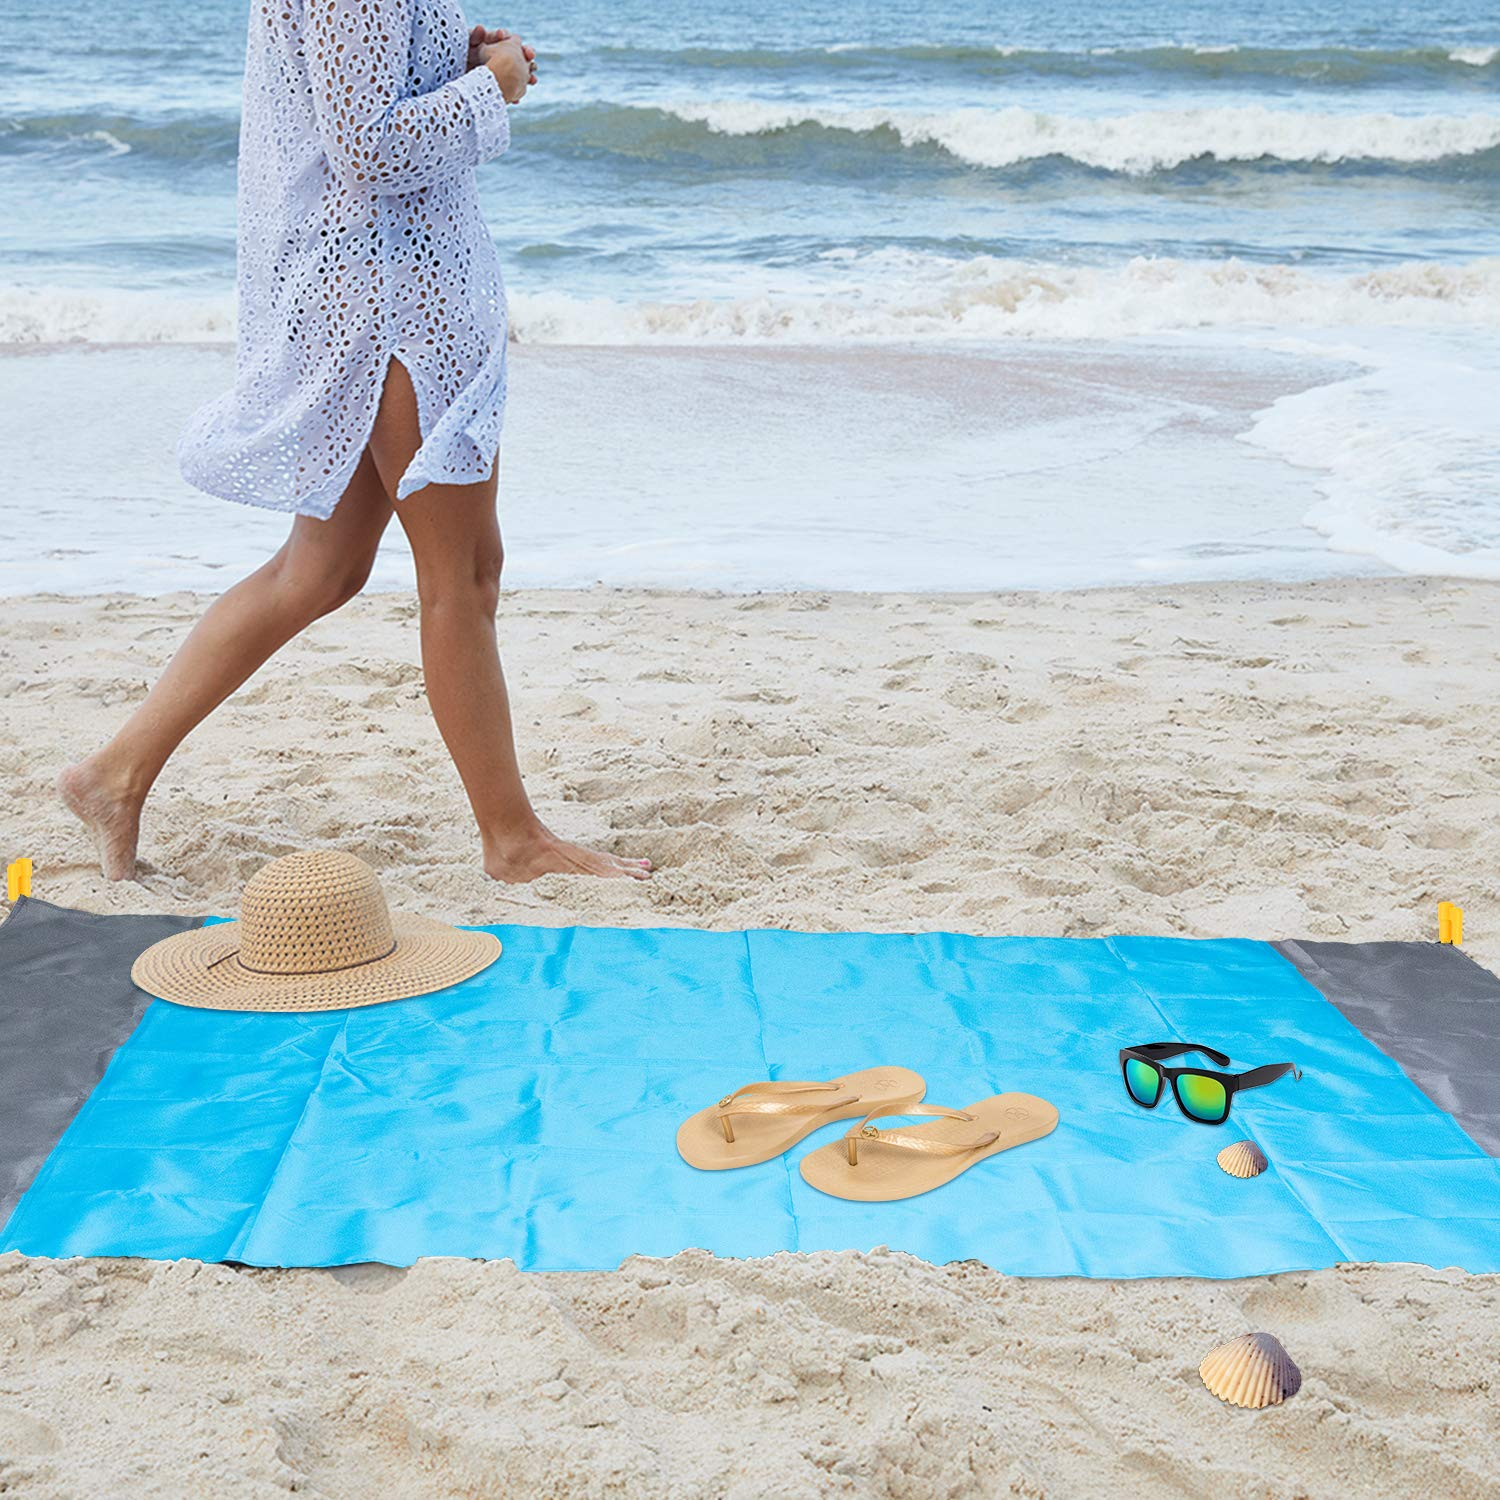 "MENOLY Sand Free Beach Blanket Outdoor Beach Blanket Heavy Duty Waterproof Beach Picnic Mat with 2 Pack Universal Transparent Waterproof Mobile Phone Case(79/"" X57/"")"